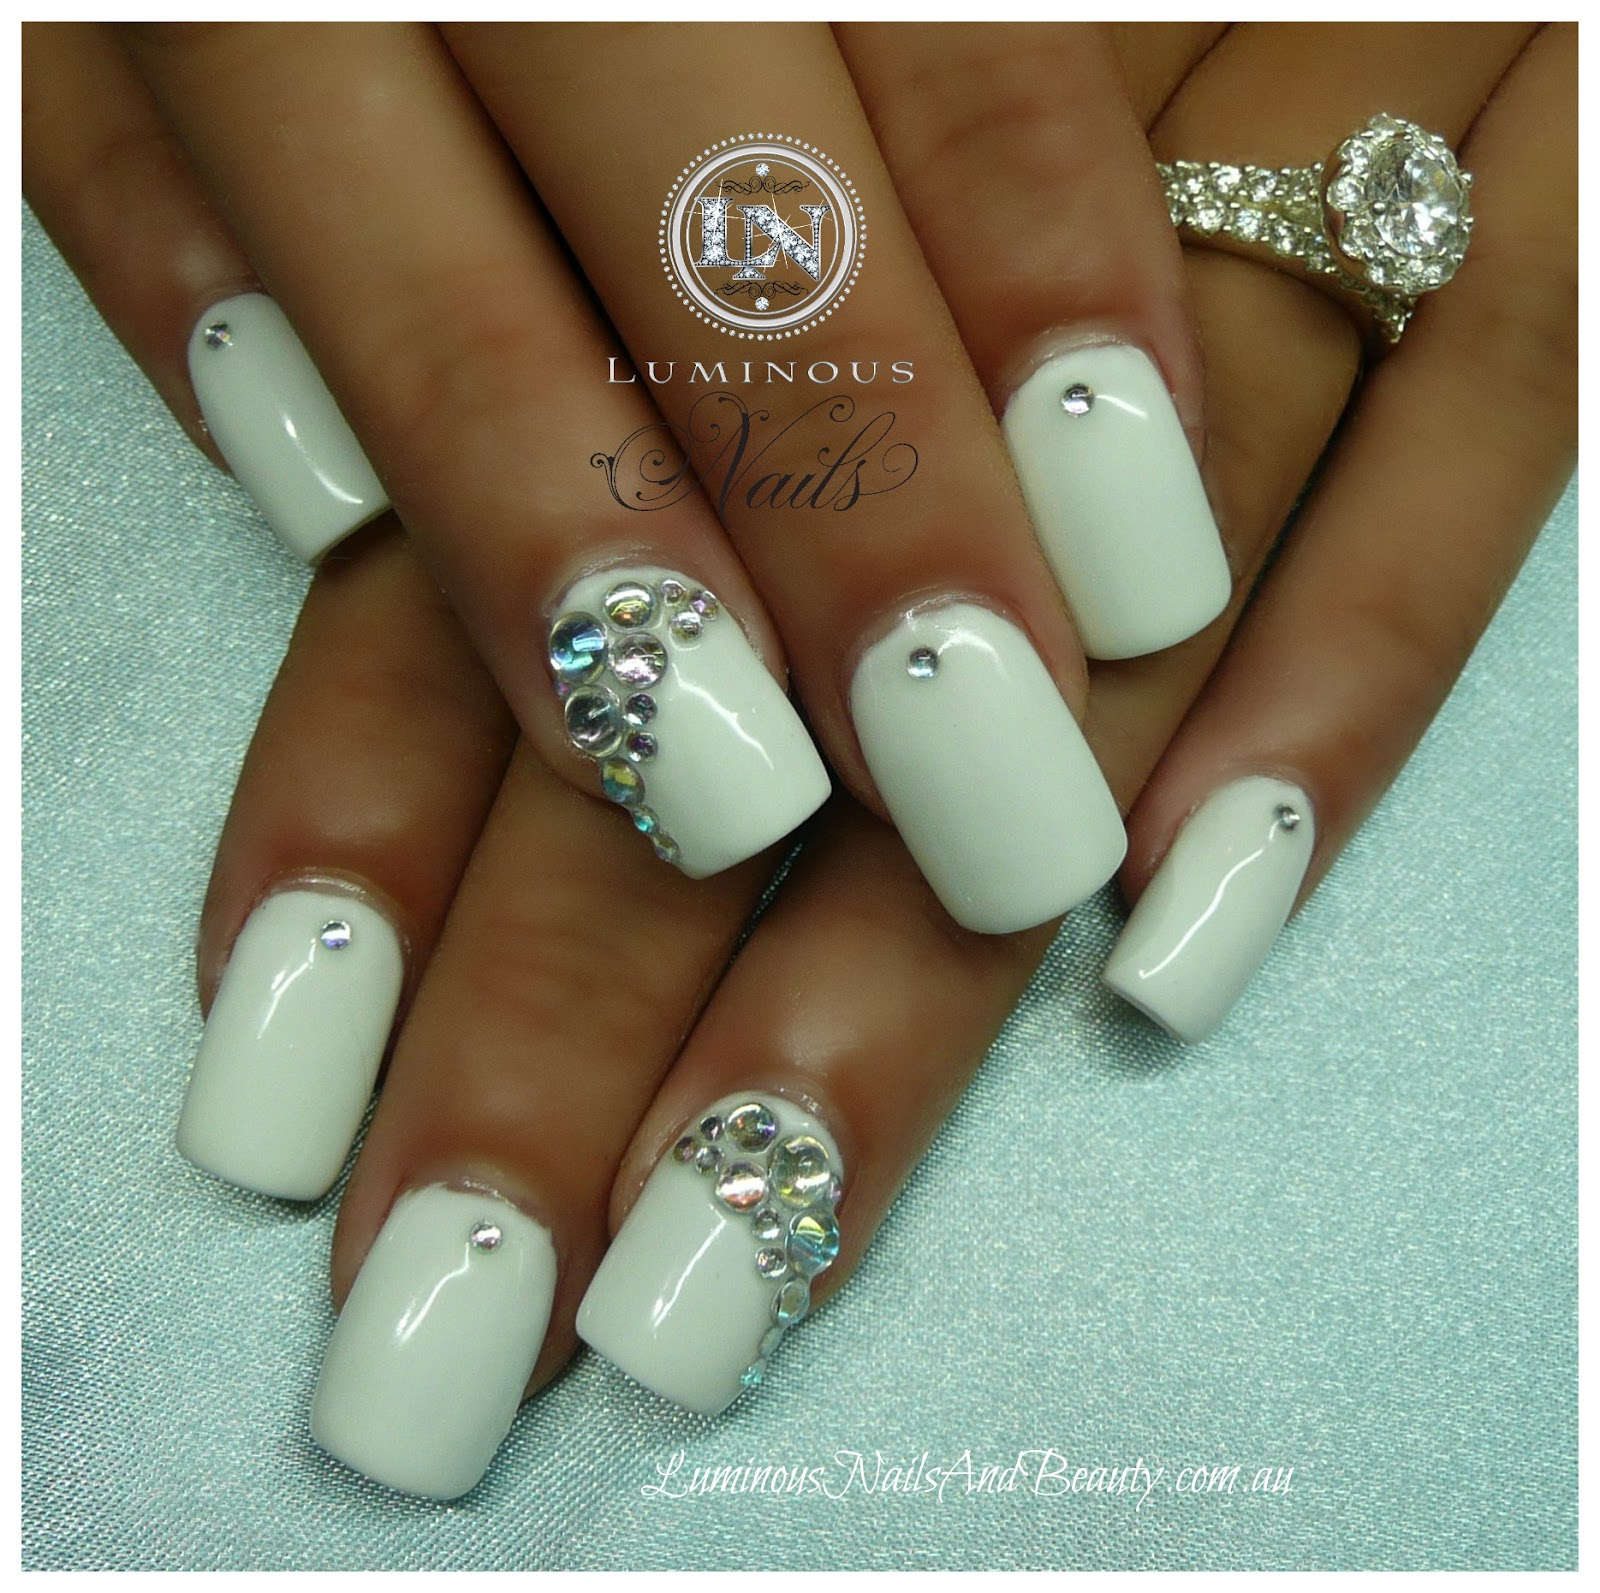 White Gel Nails with Crystals | Nails | Pinterest | Modelo y Pinturas